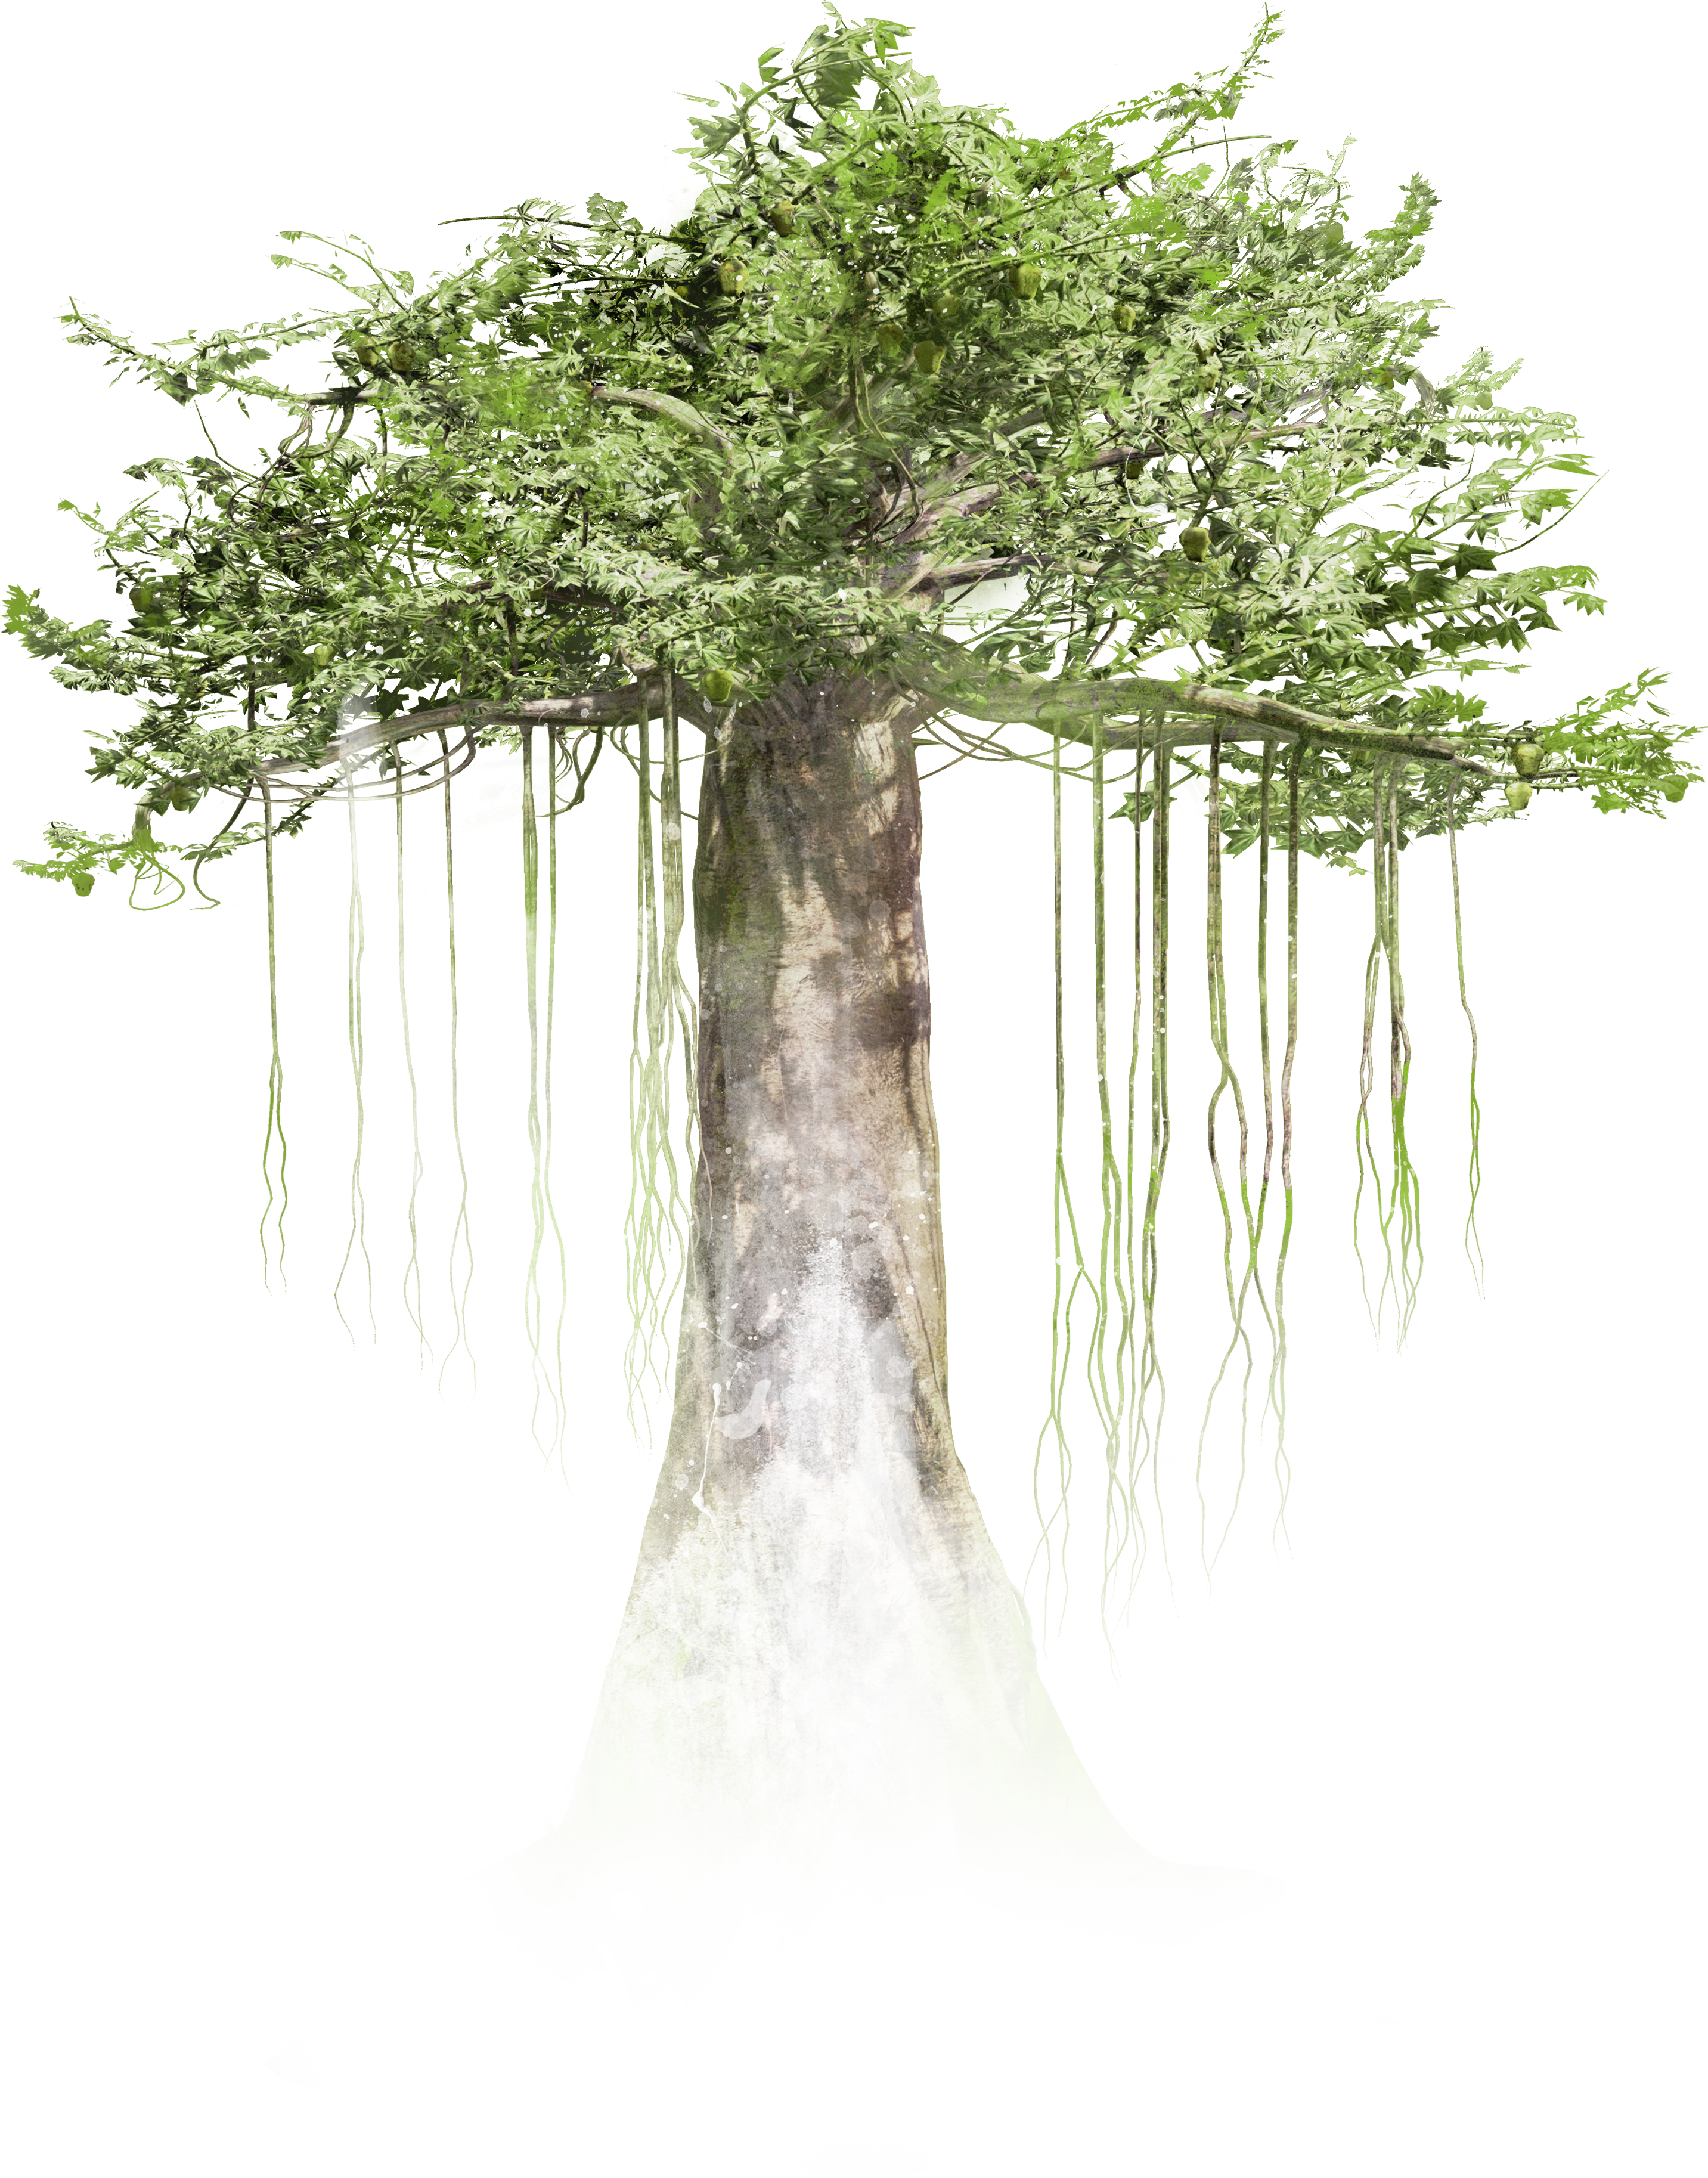 Tree Official for Park Tree Png  104xkb